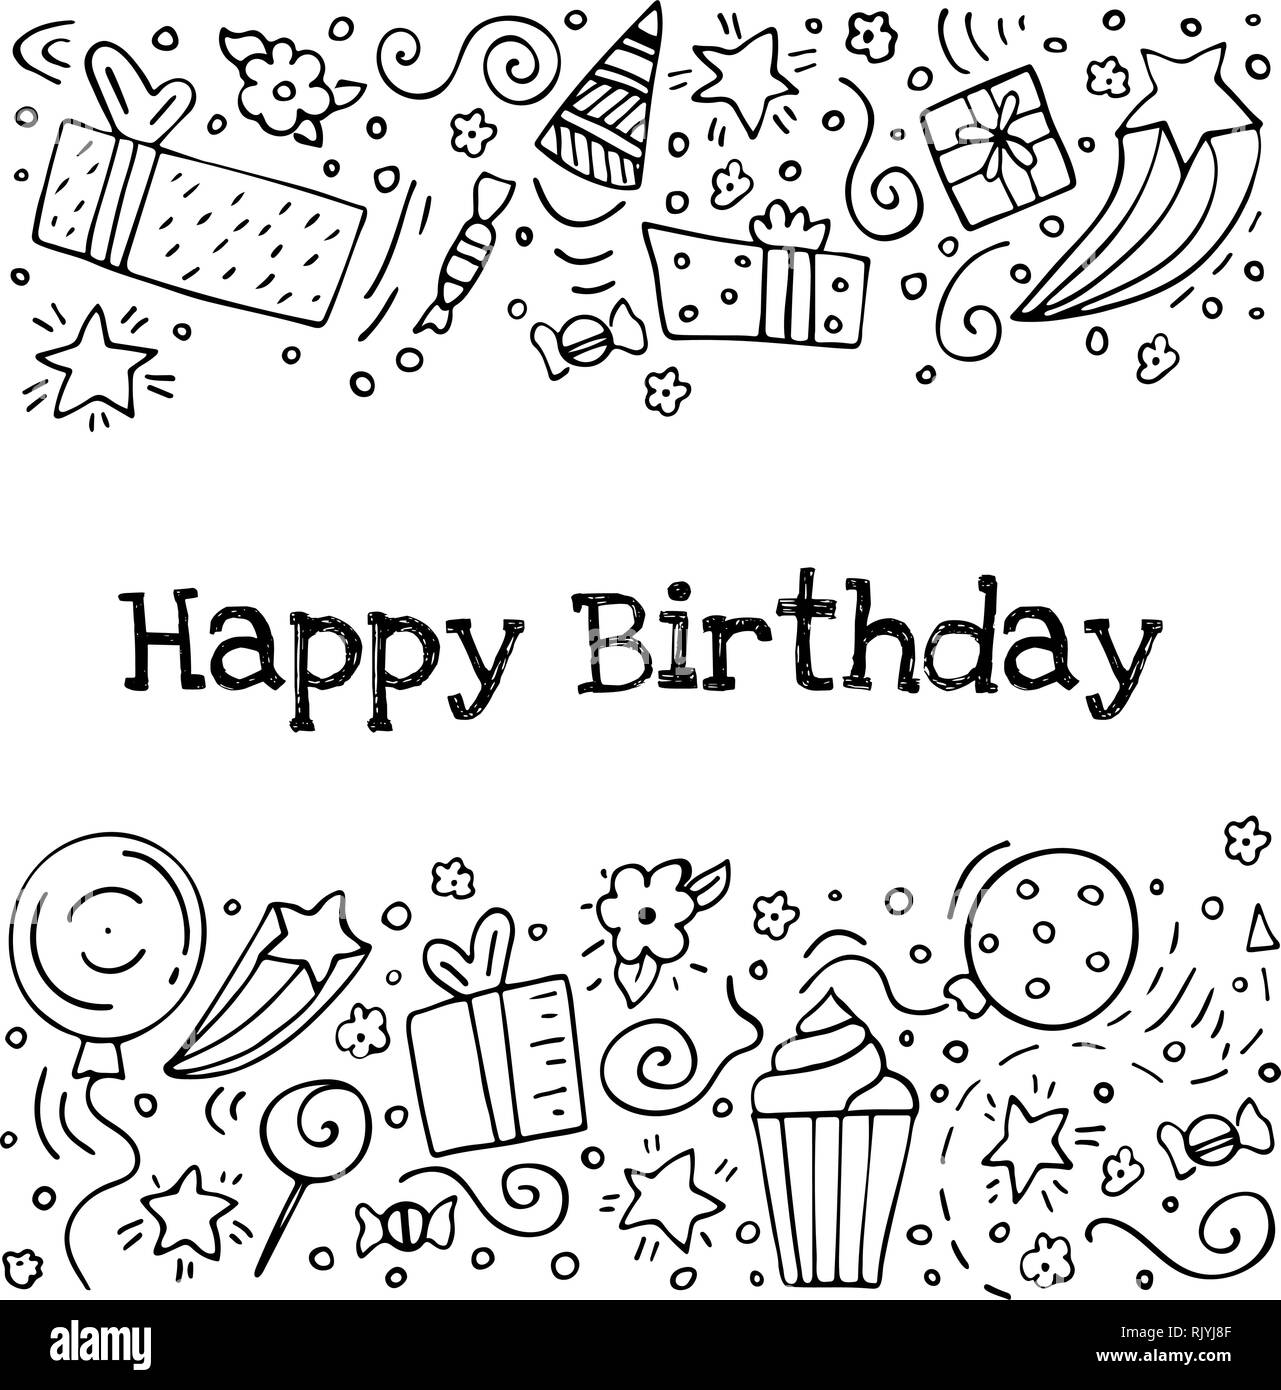 Happy Birthday Black And White Stock Photos & Images